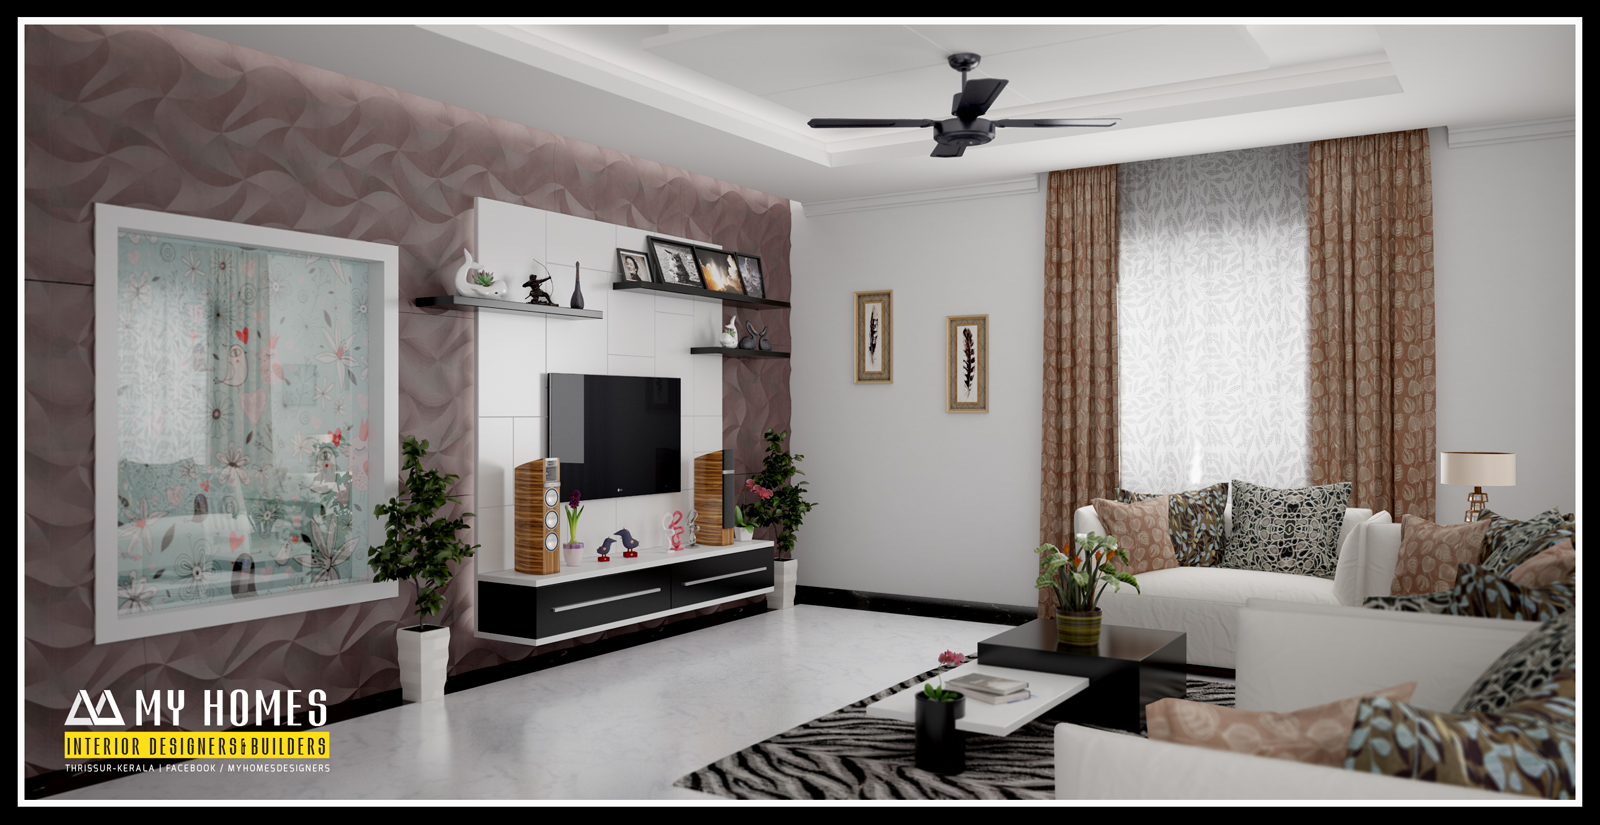 Kerala interior design ideas from designing company thrissur for House room design ideas